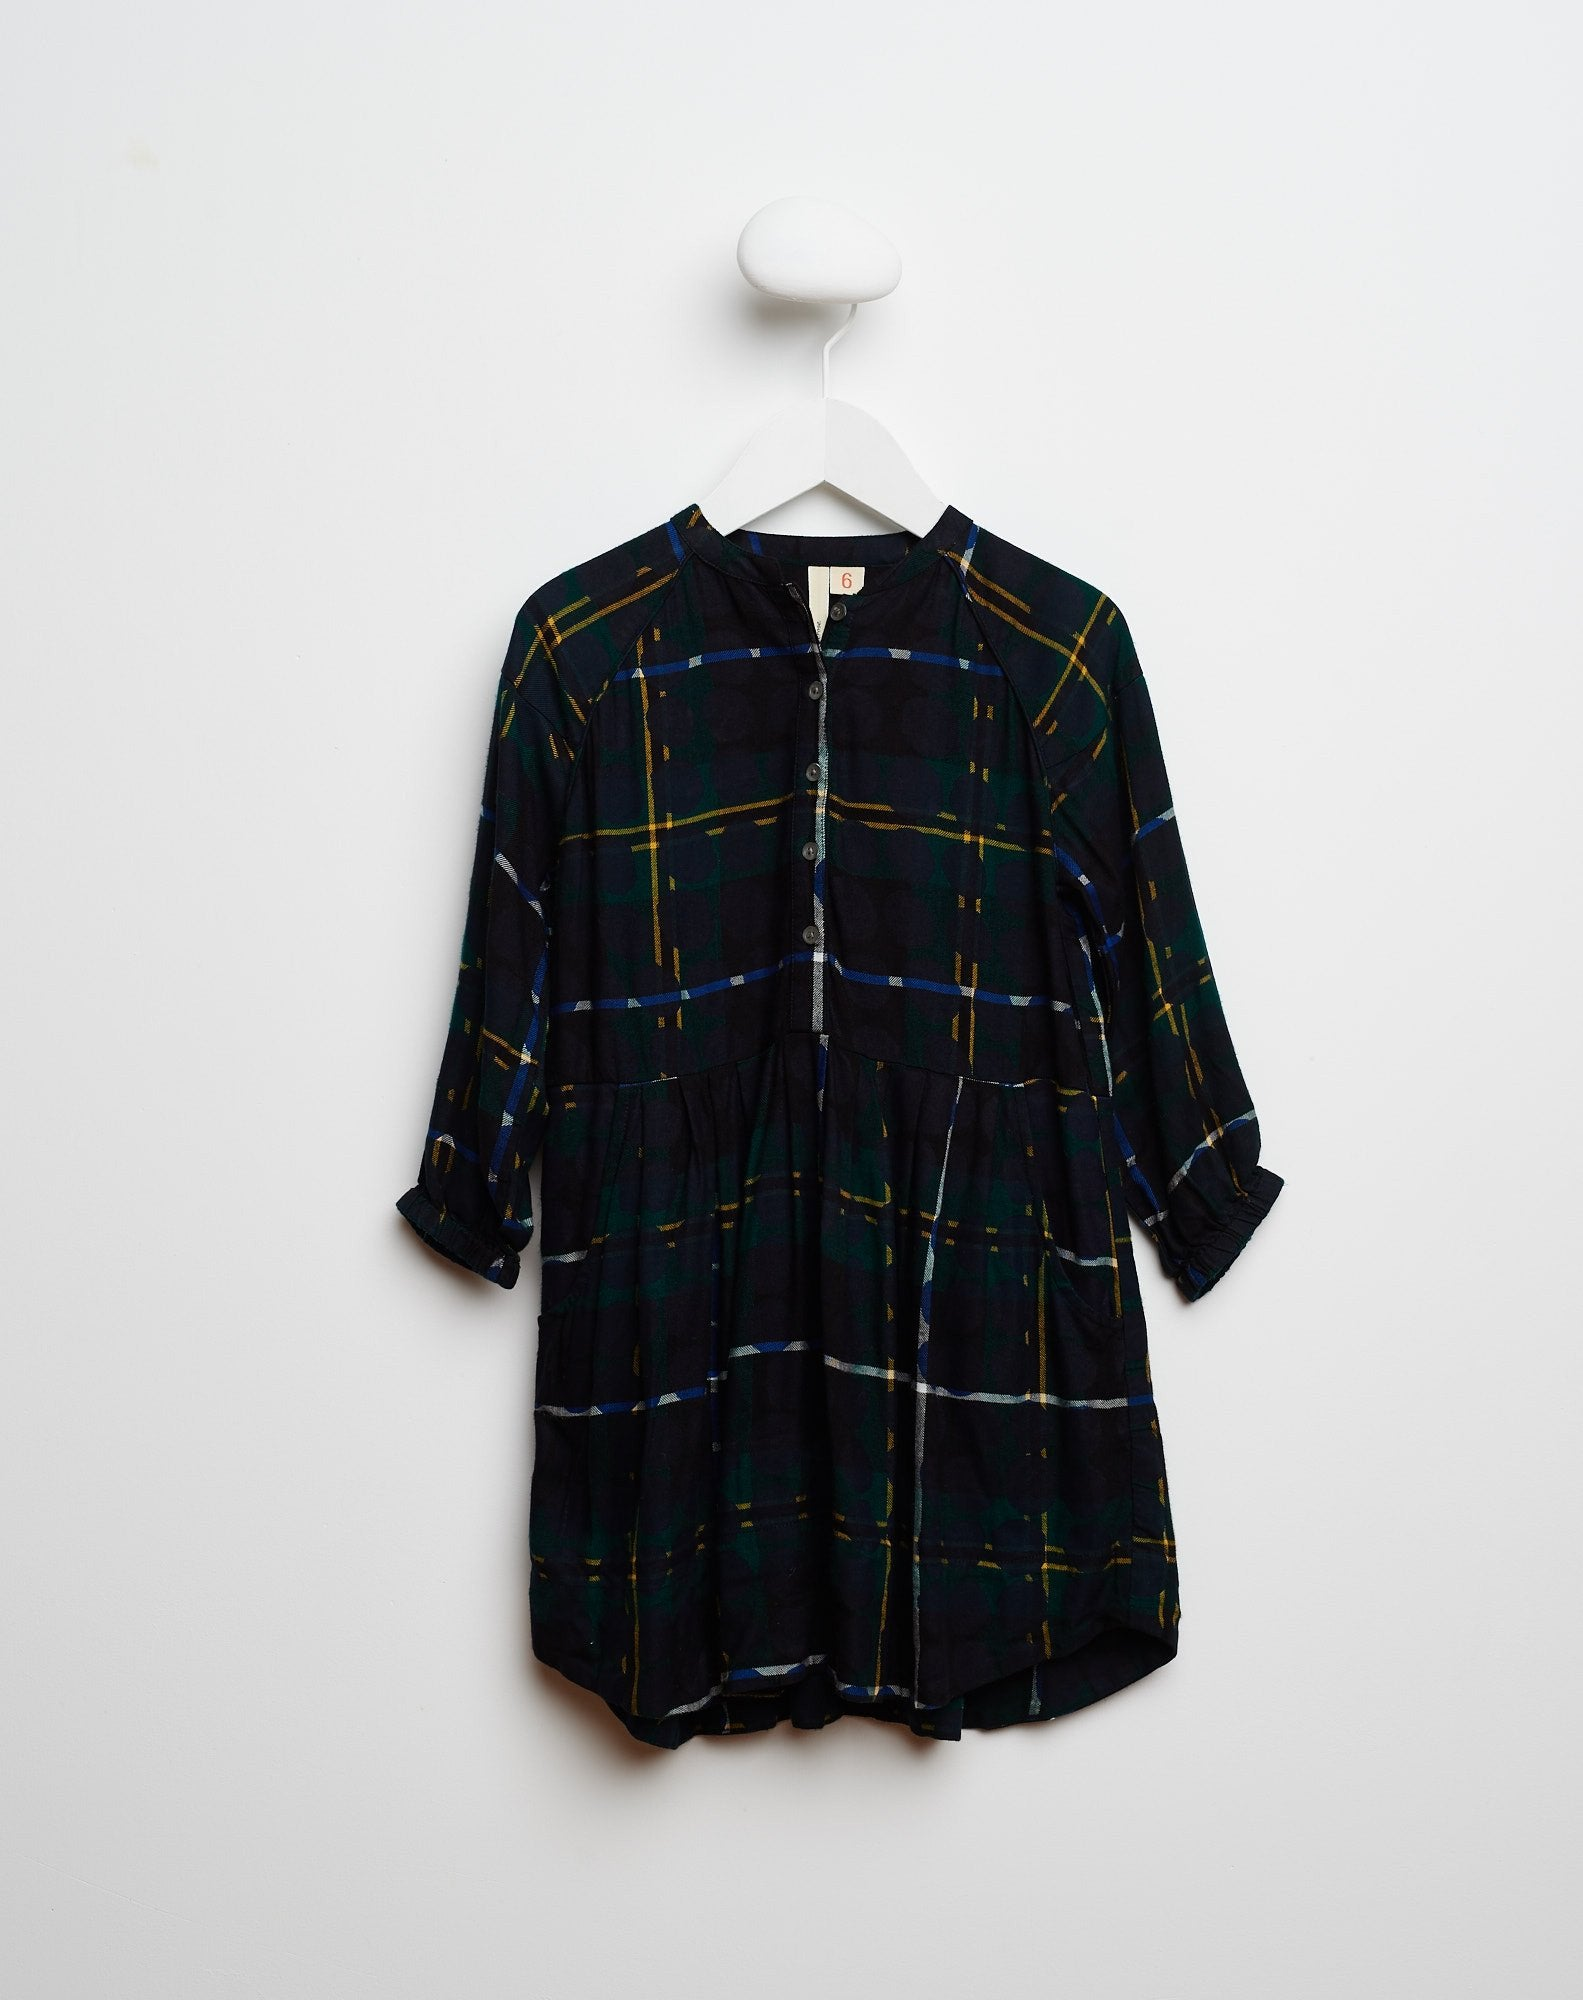 Bellerose Dark Plaid Shirtdress - Ladida